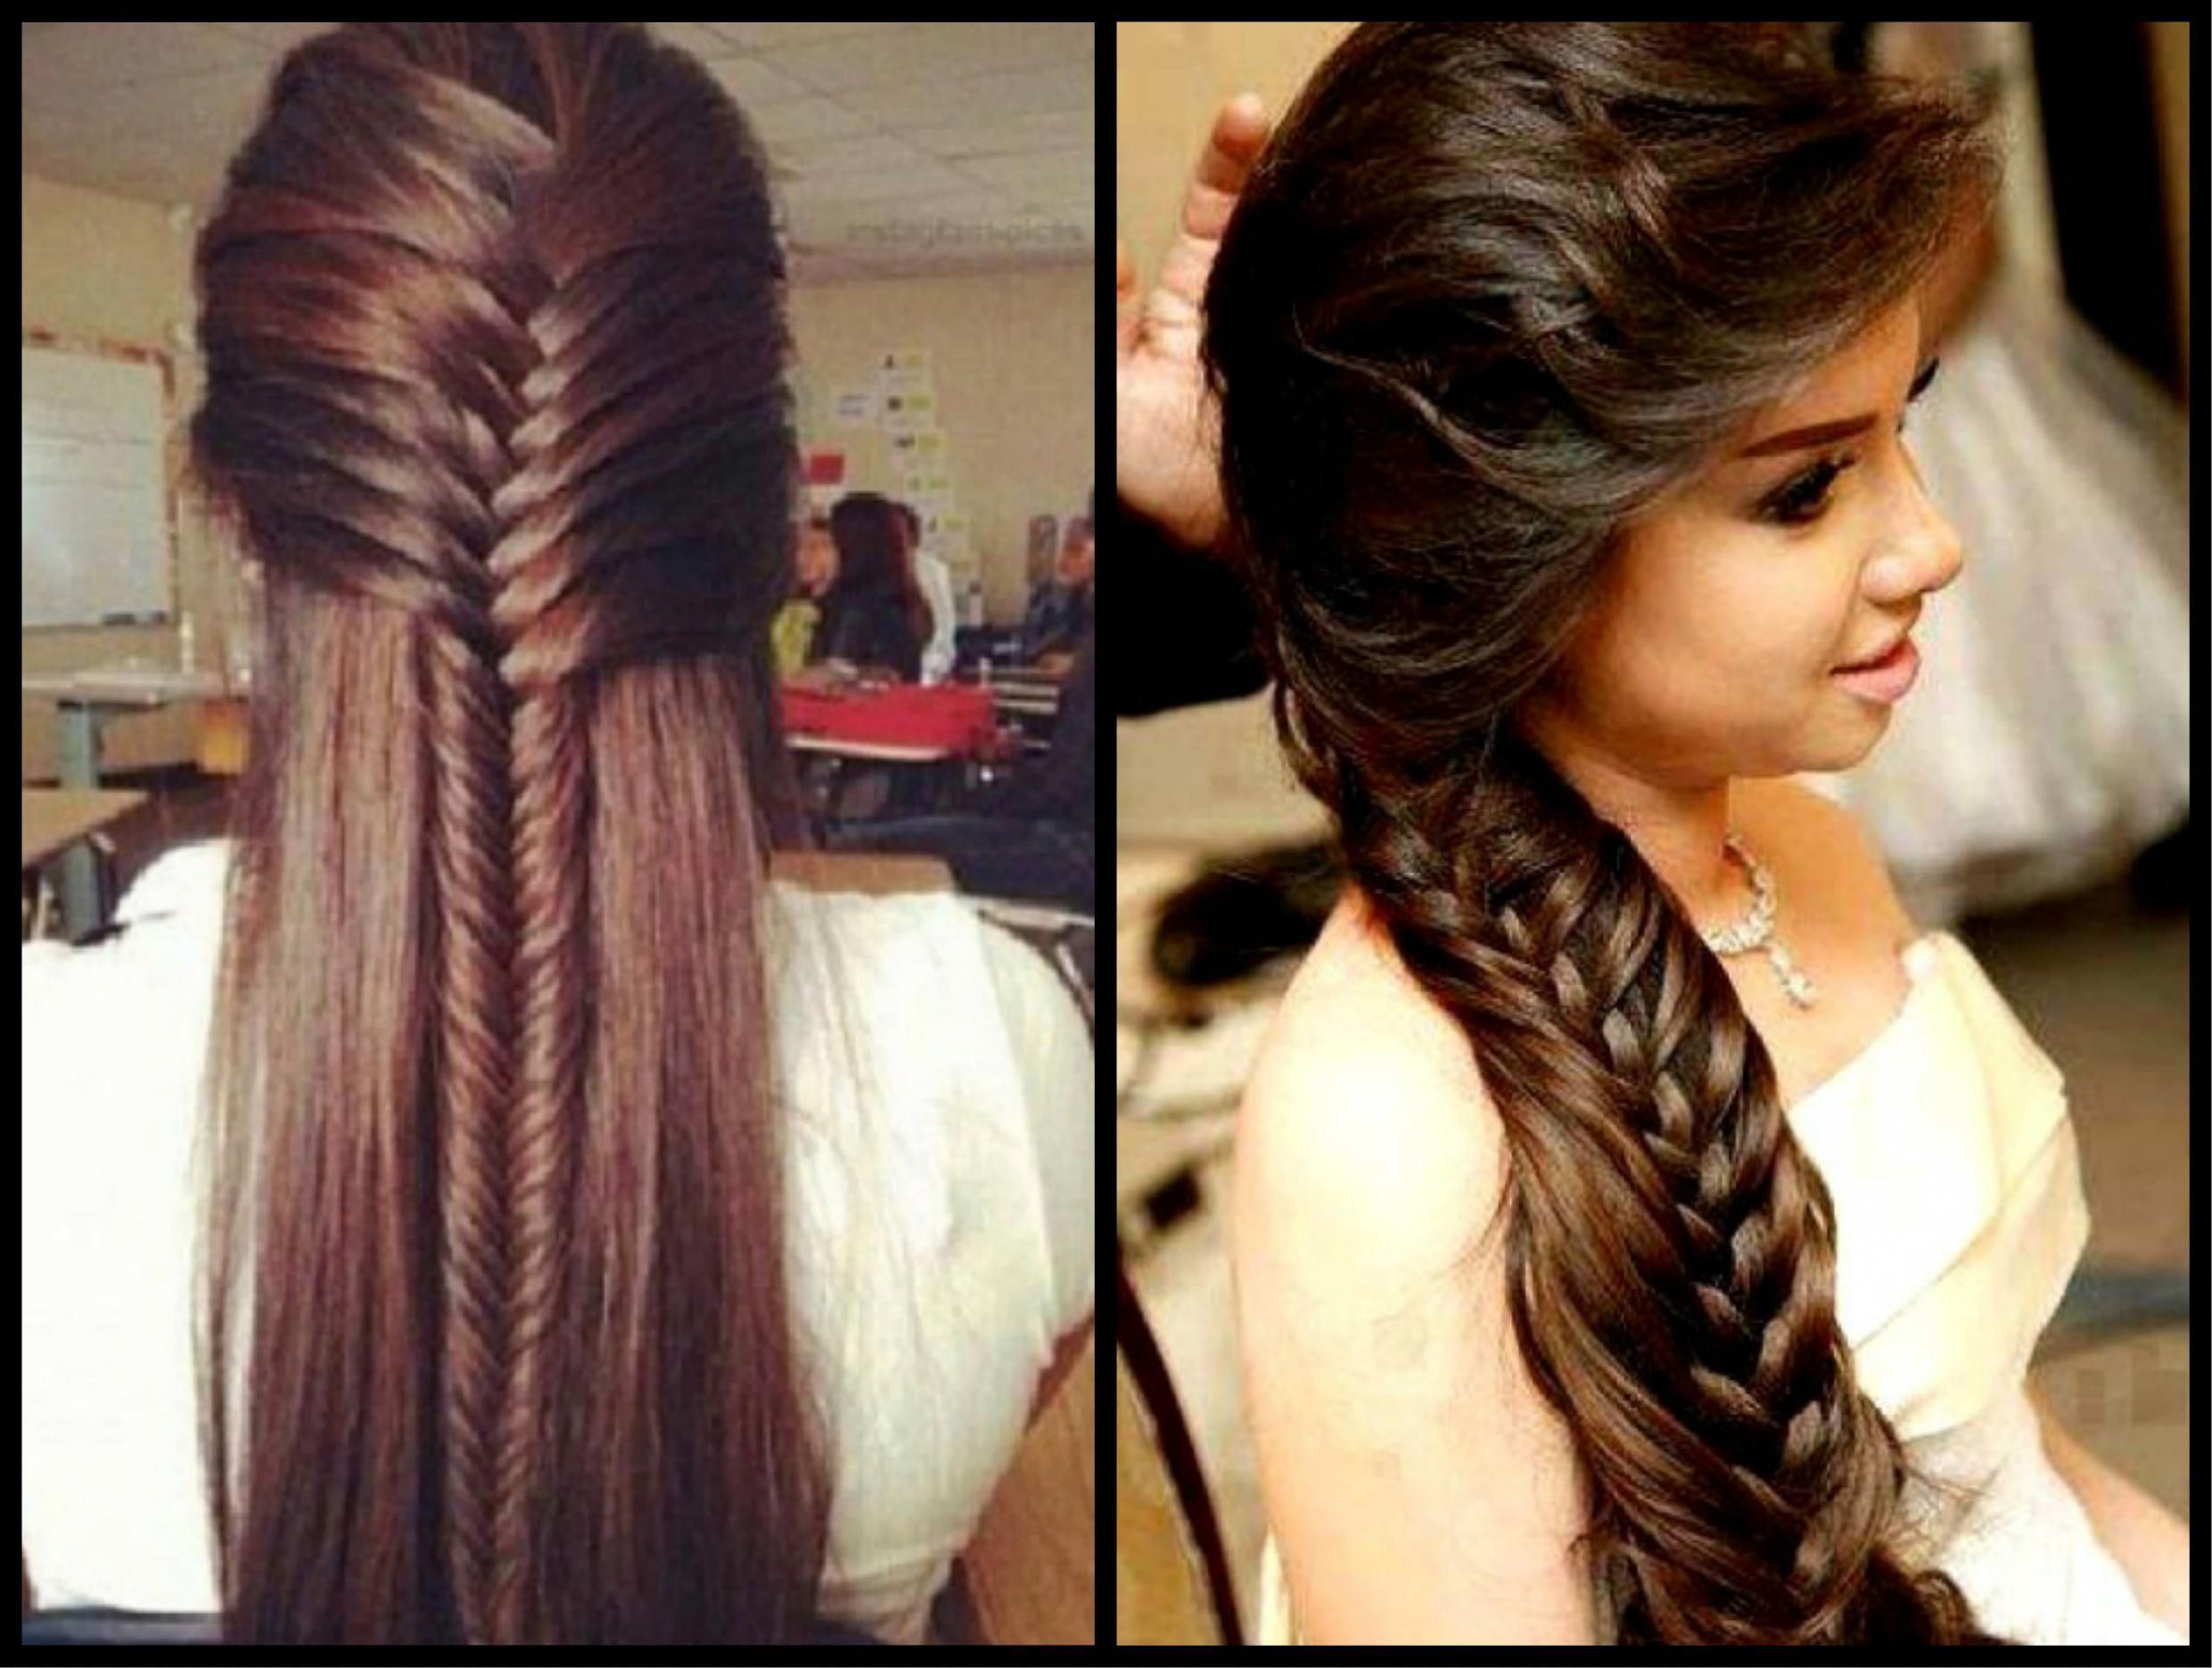 Hairstyles For Long Hair Indian Girl Hairstyles Hairstylesforlonghair Indian Blackhairstylesf Short Wedding Hair Long Hair Indian Girls Medium Hair Styles